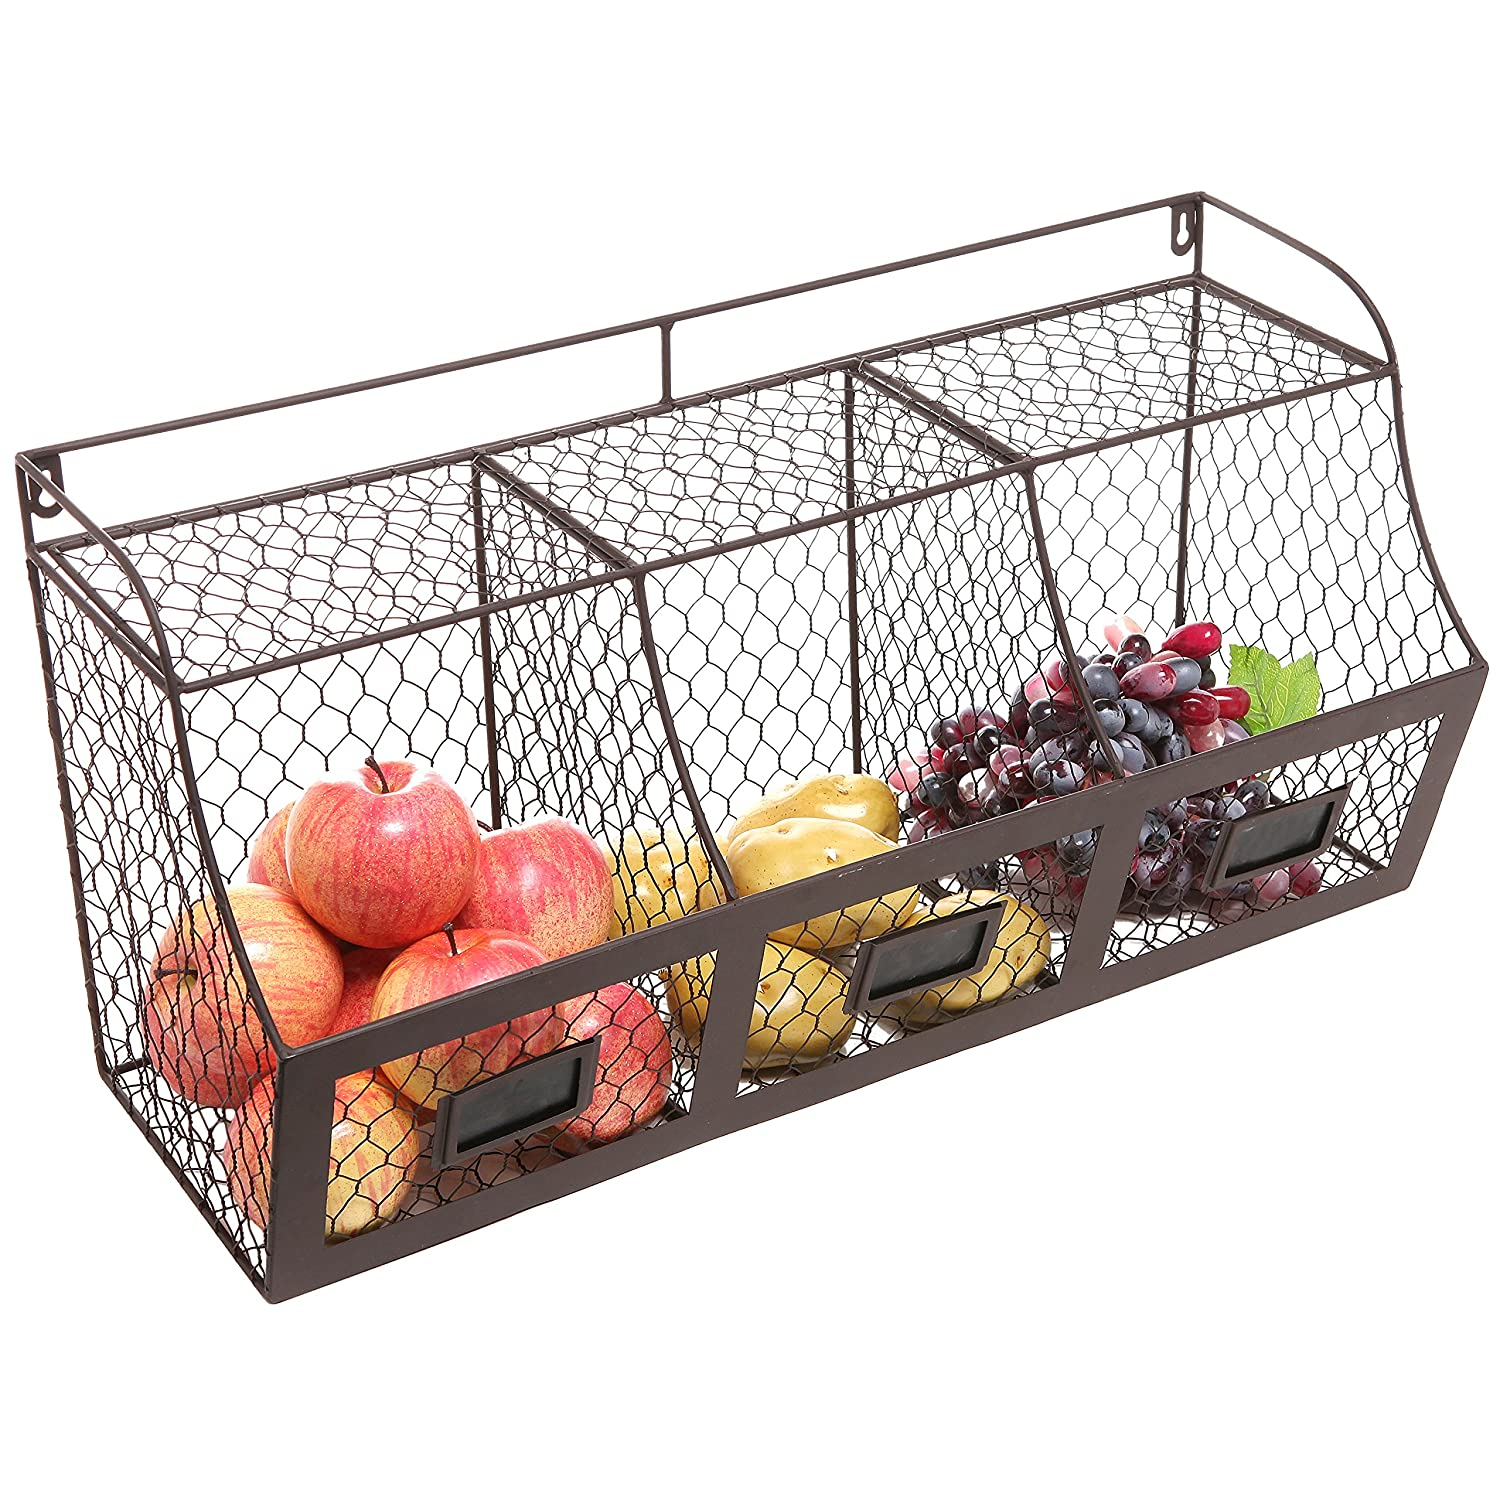 Amazon.com   Large Rustic Brown Metal Wire Wall Mounted Hanging Fruit  Basket Storage Organizer Bin W/Chalkboards